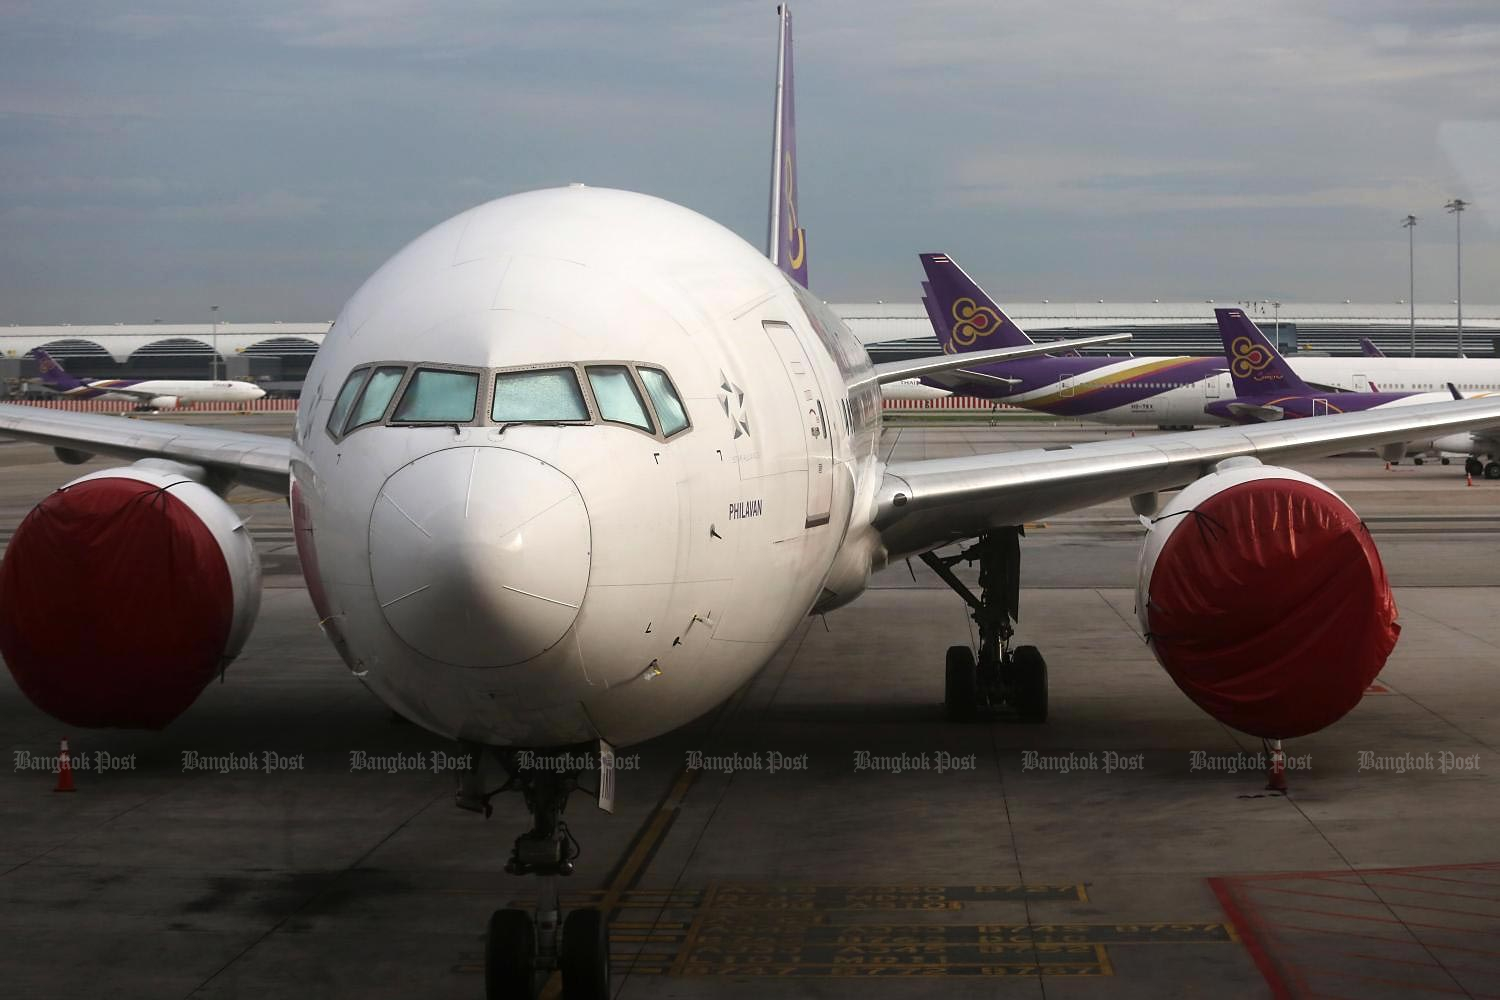 Thai Airways airplanes are seen parked on the tarmac at Suvarnabhumi airport. The Central Bankruptcy Court heard in July the rehabilitation plan of the loss-ridden carrier, which has been further battered by the impact of Covid-19. (Photo by Wichan Charoenkiatpakul)